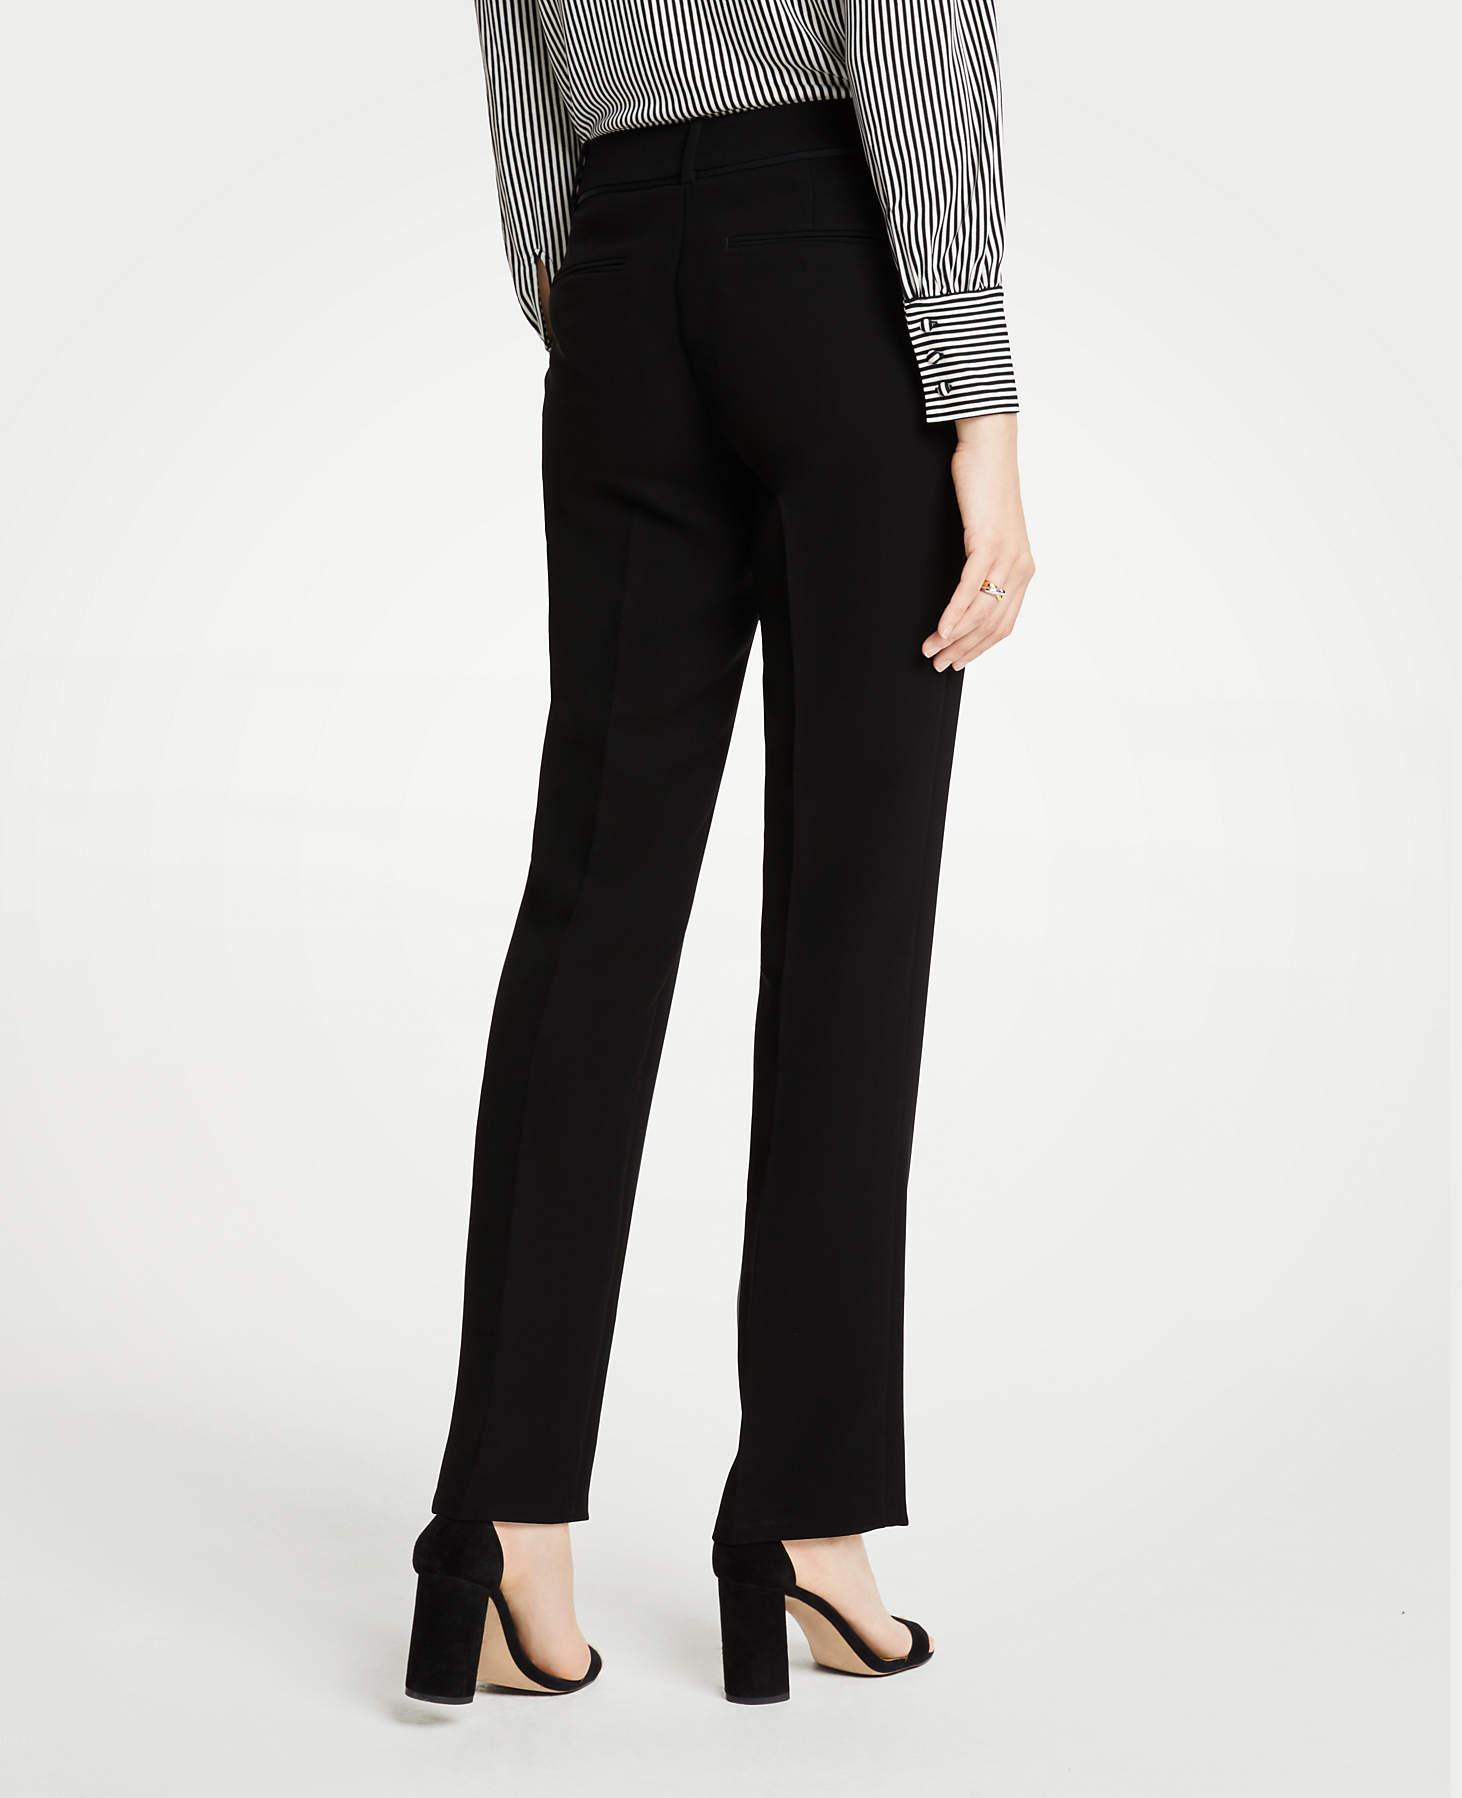 Ann Taylor The Tall Straight Pant In Doubleweave - Classic Fit in Black